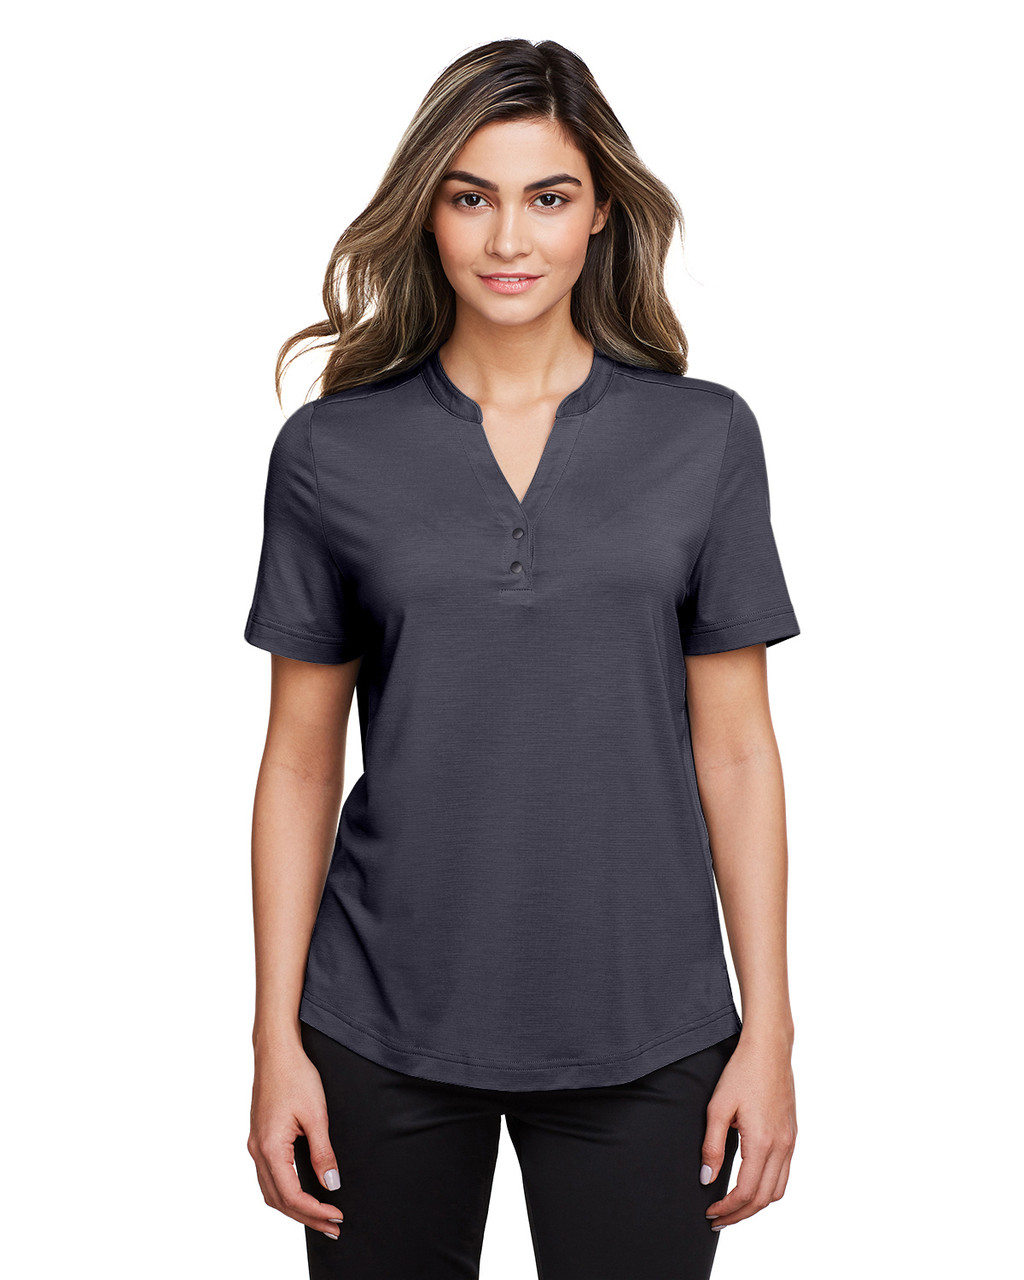 Carbon  - NE100W North End Ladies' Jaq Snap-Up Stretch Performance Polo | BlankClothing.ca